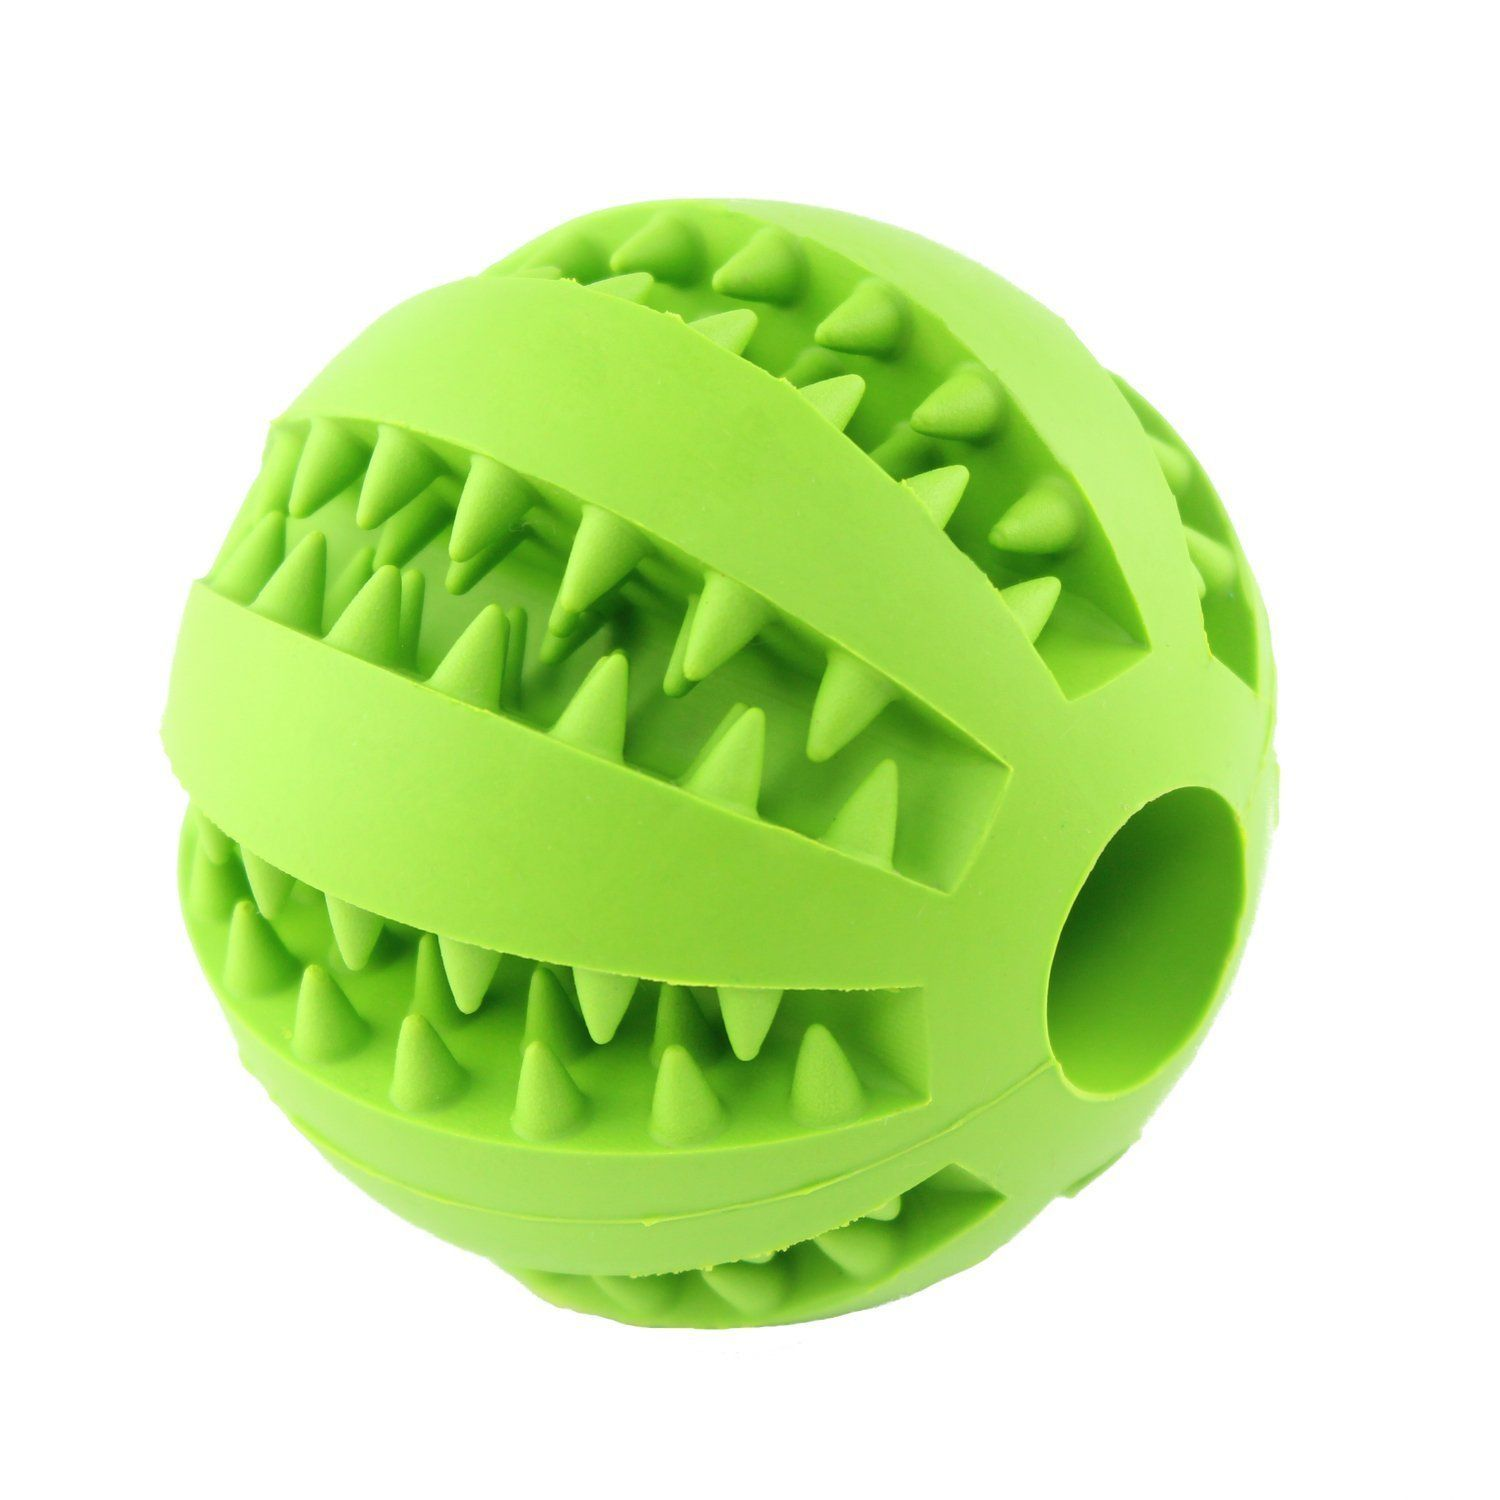 wangstar Dual Pet Toy Ball for Dogs Bite Resistant Soft Rubber